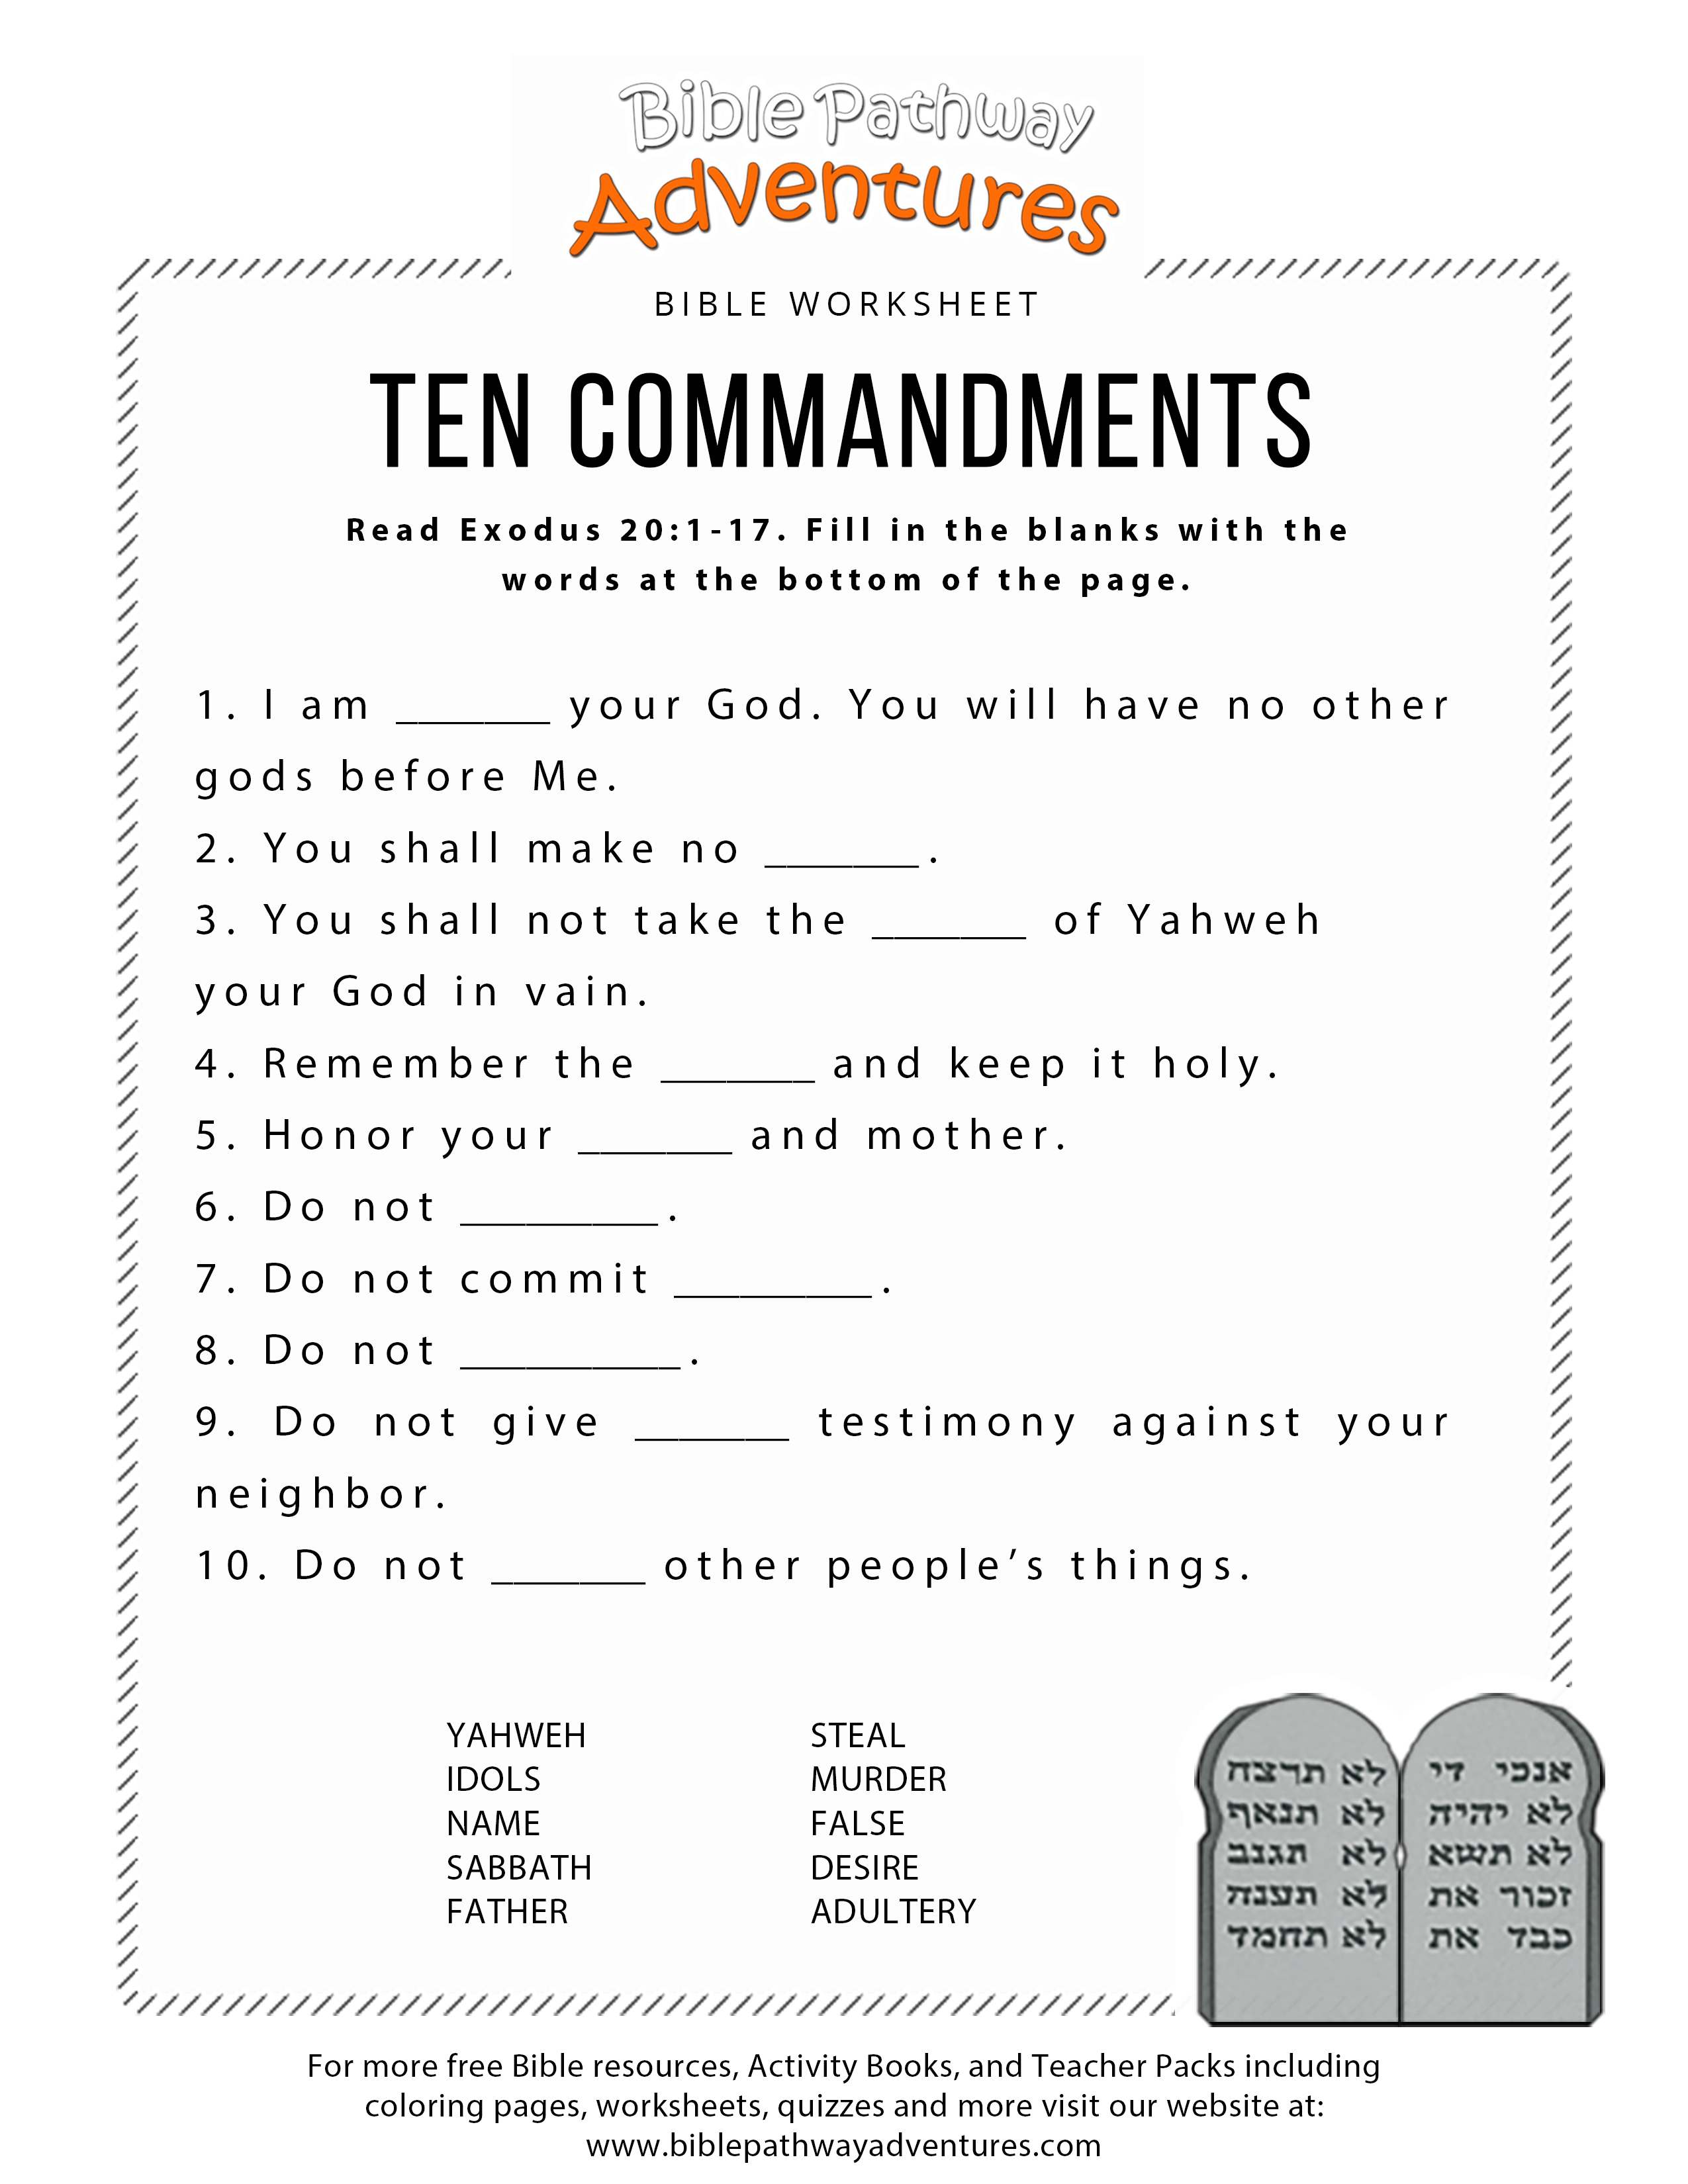 Free Printable Sunday School Lessons For Kids | Free Printable